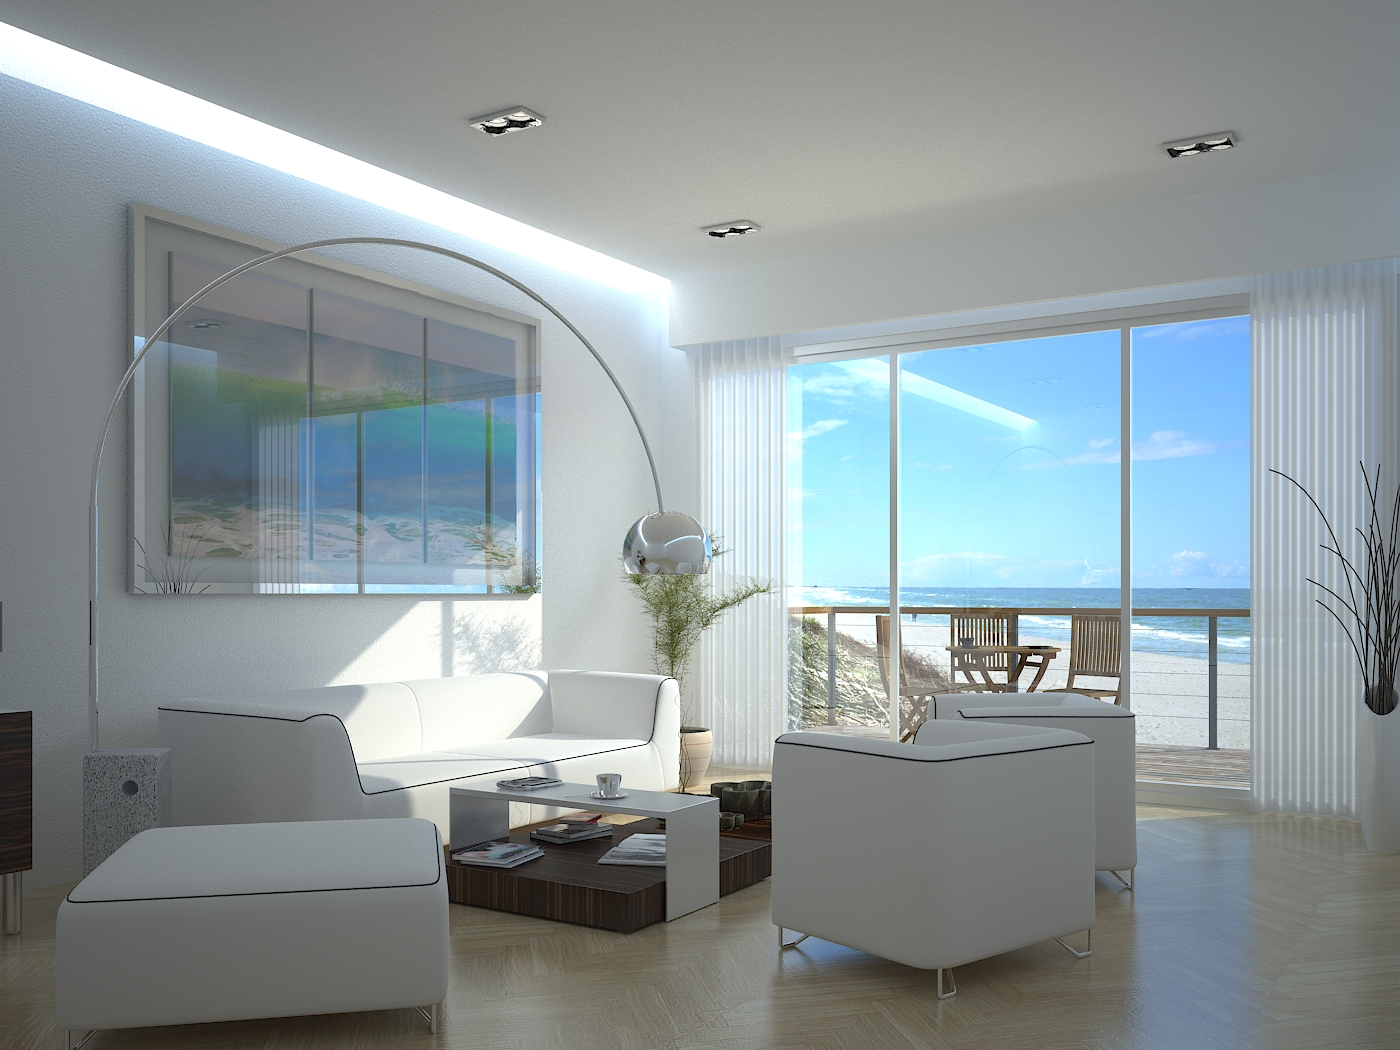 New beach house interior by outboxdesign on deviantart Interior design ideas for beach home